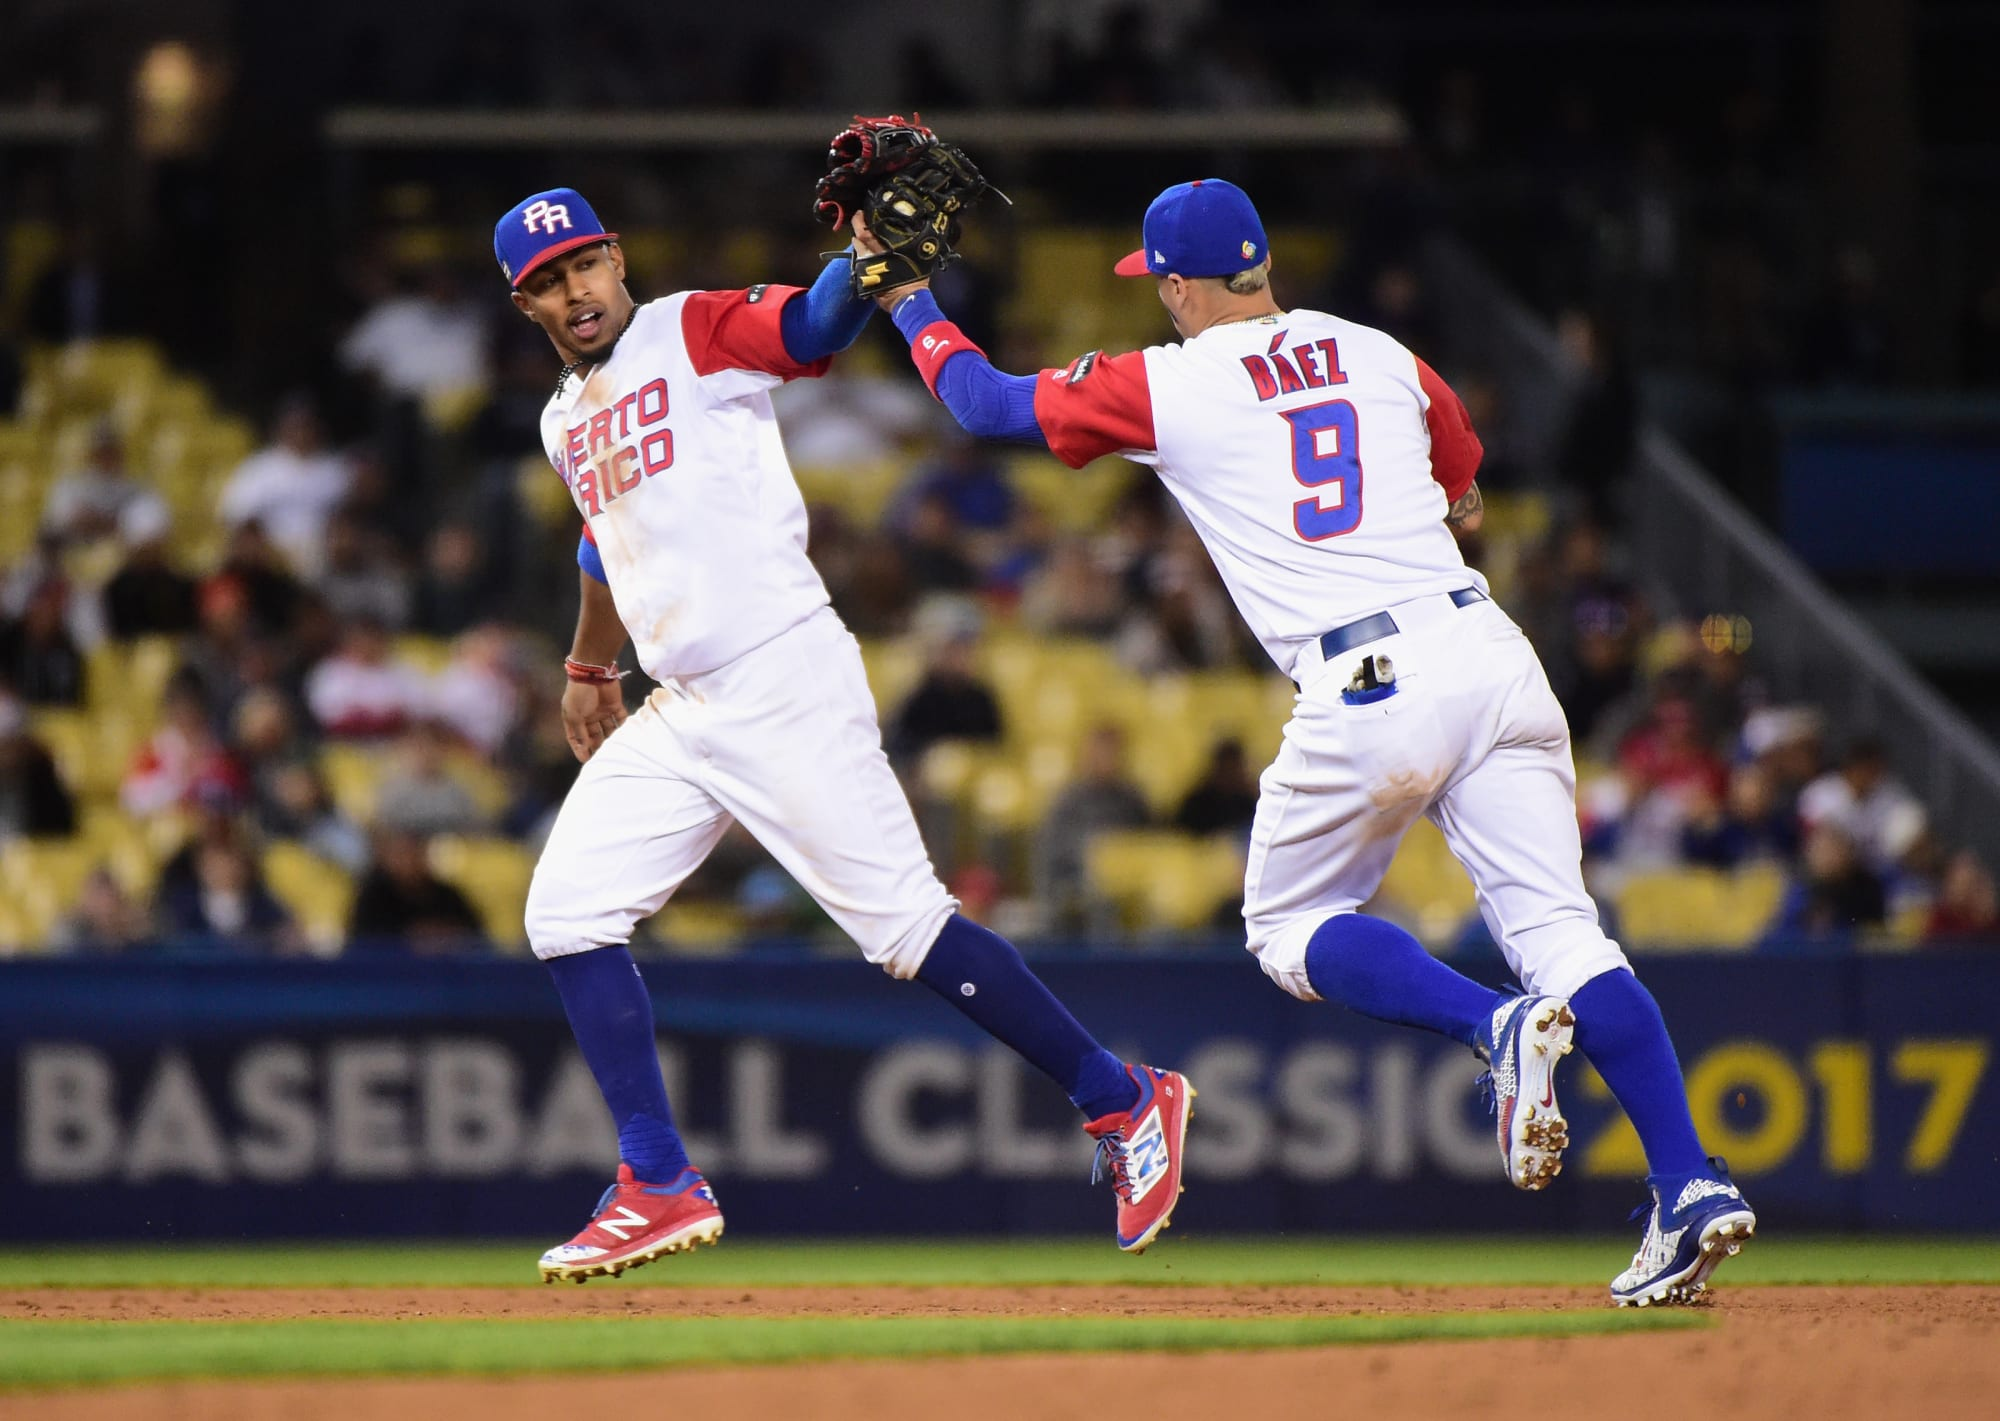 Javy Baez says Francisco Lindor is the best shortstop of their generation